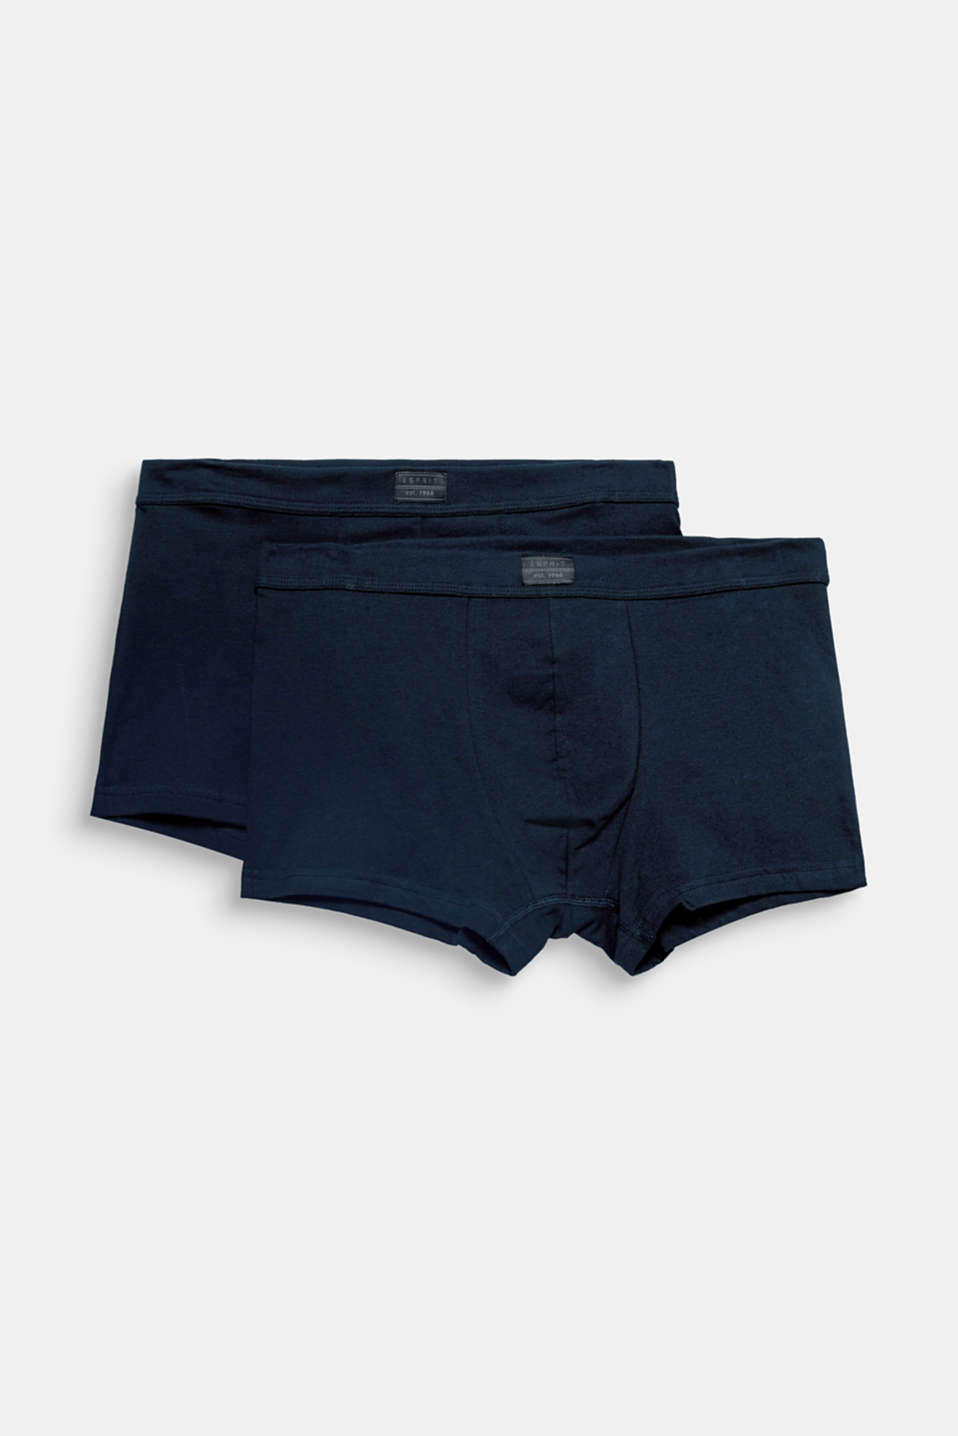 Sporty look, comfortable fabric: These shorts come in a practical double pack and are made of stretch cotton.